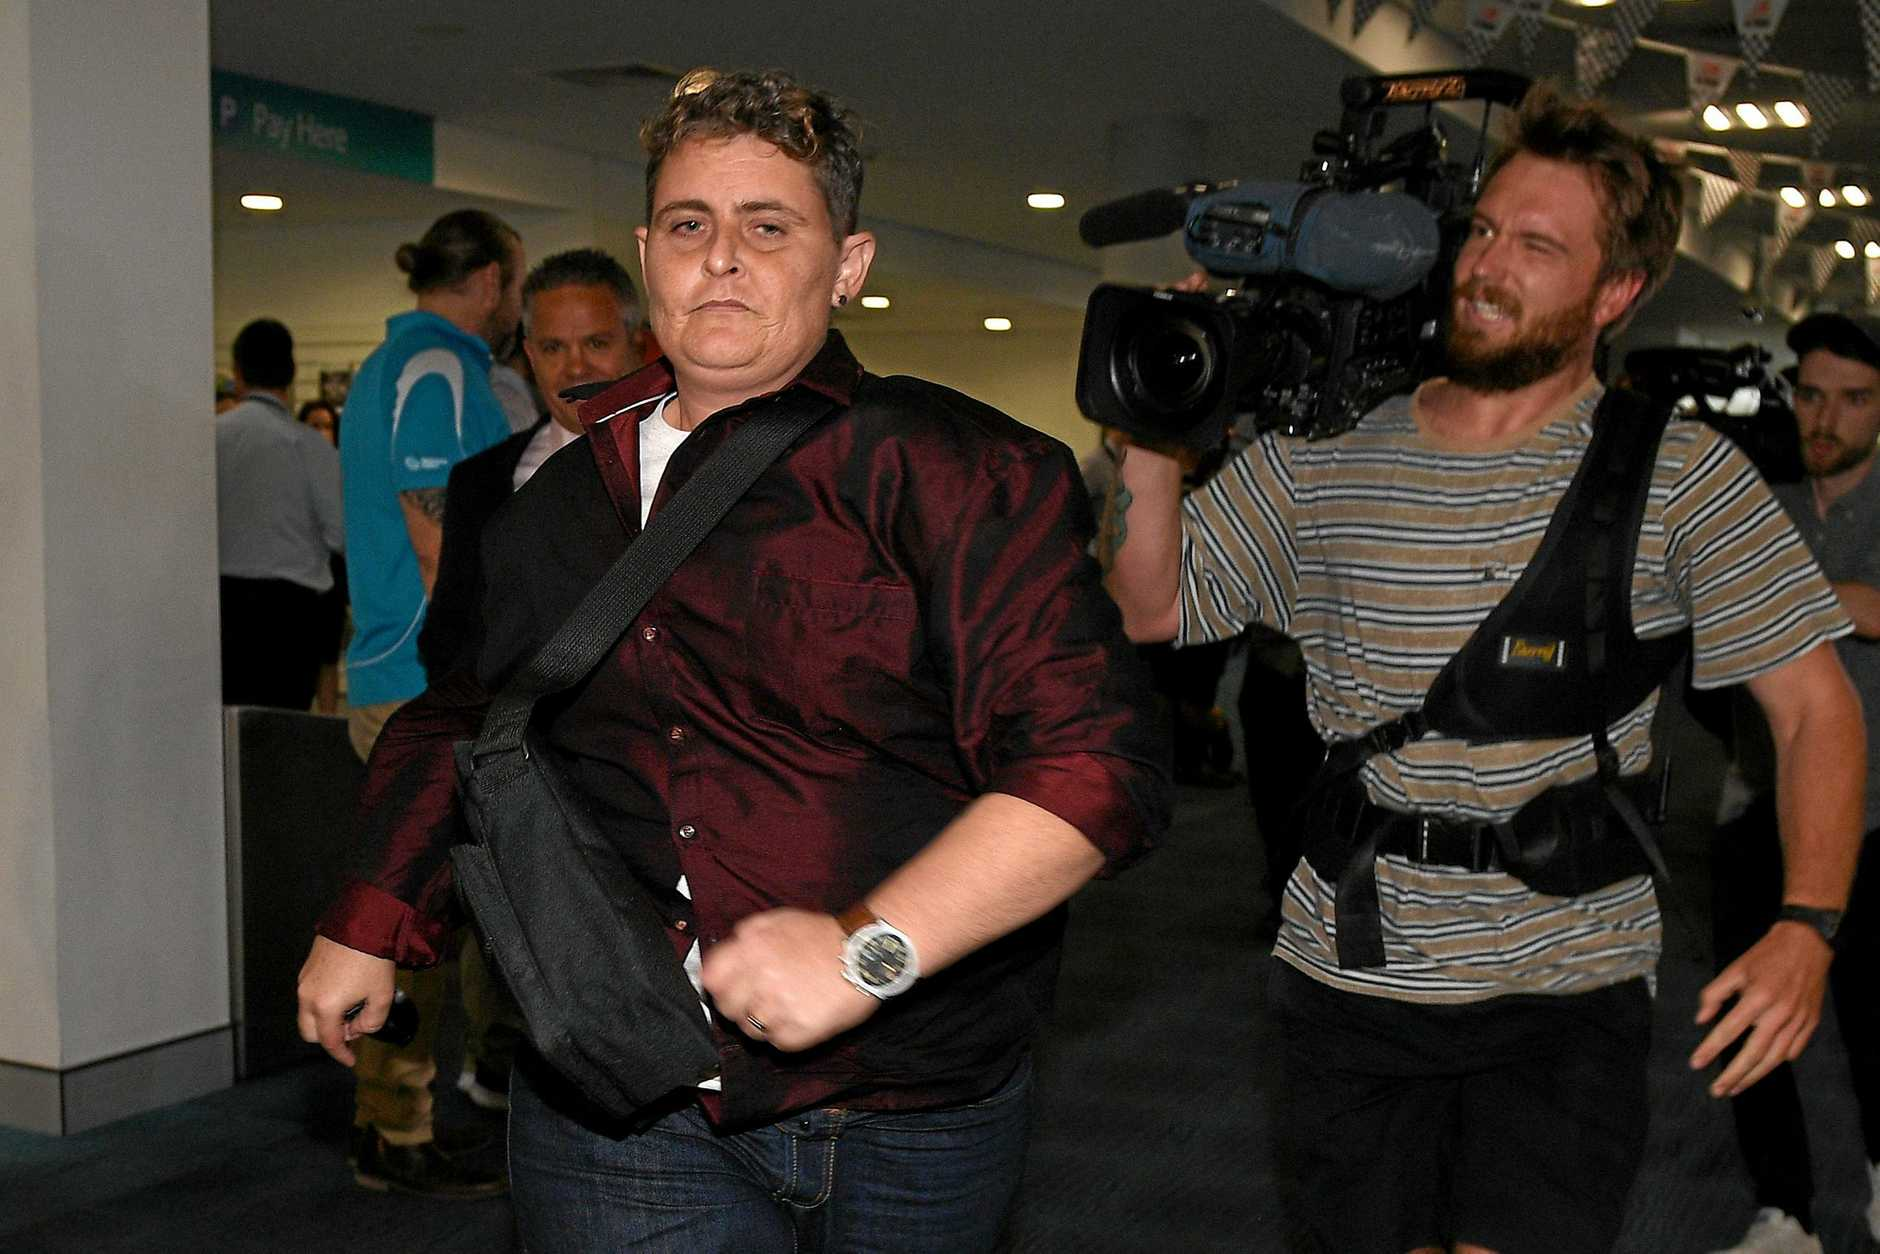 Bali Nine drug smuggler Renae Lawrence runs through the terminal as she arrives at Newcastle airport, on Thursday, November 22, 2018. Lawrence was released from Indonesia's Bangli Prison yesterday after spending more than 13 years behind bars for attempting to smuggle 2.7kg of heroin from Bali to Australia.